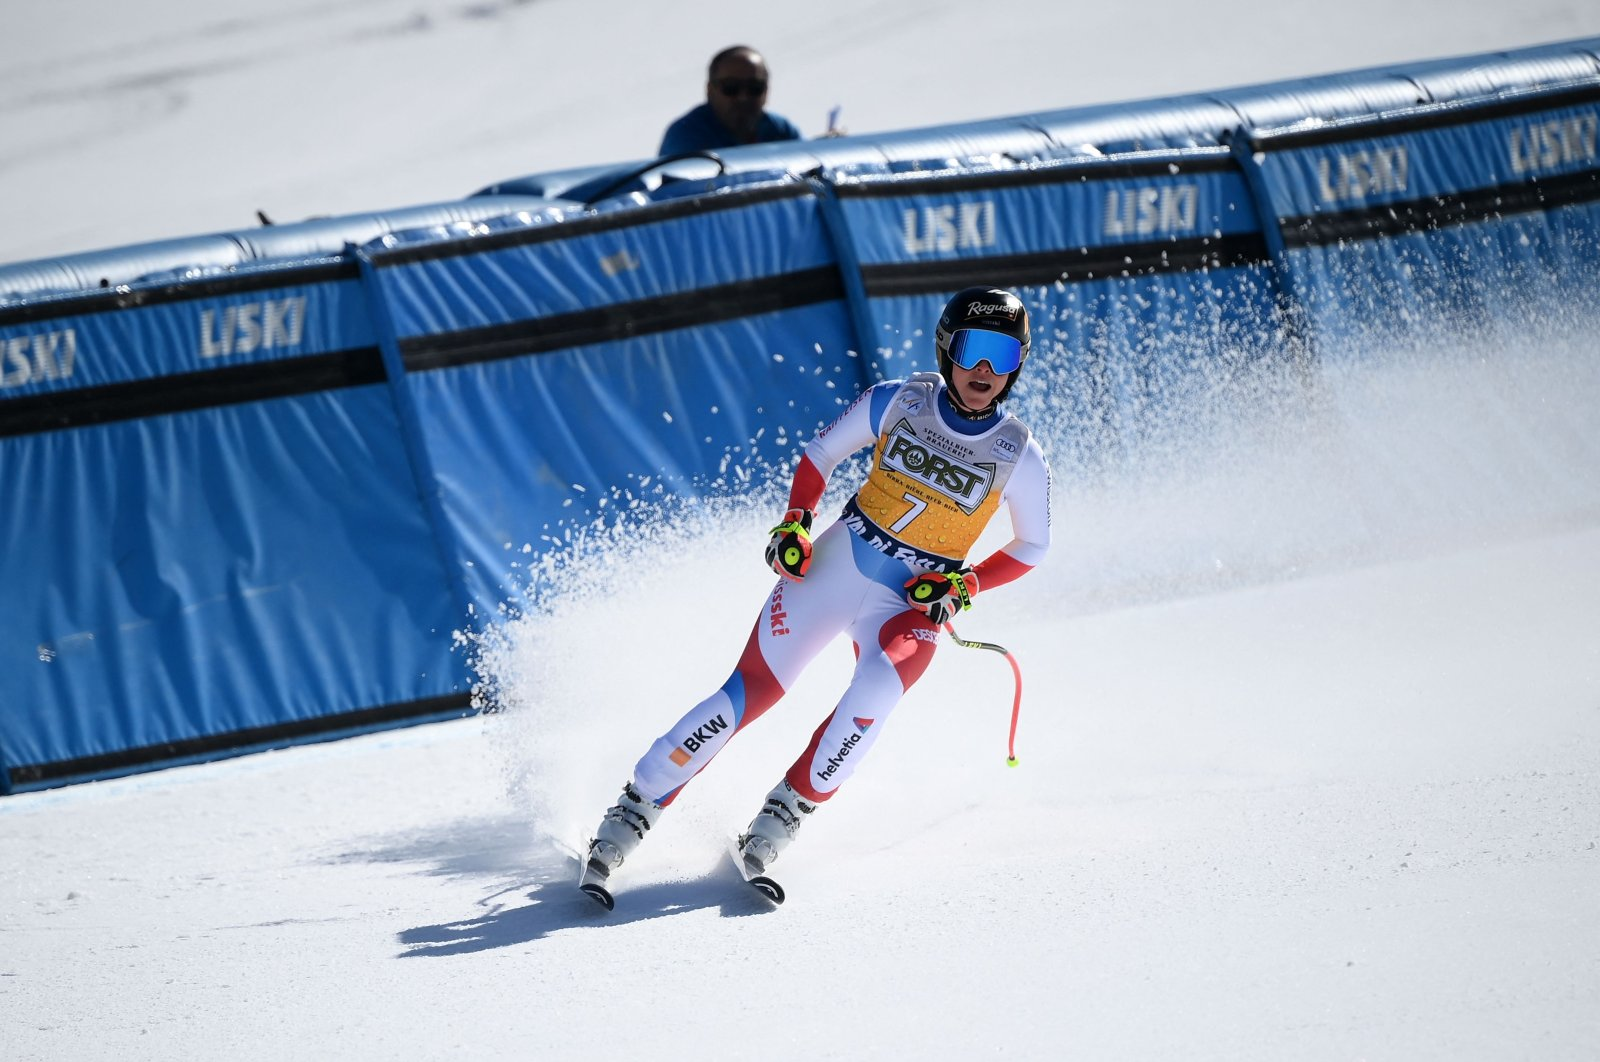 Lara Gut-Behrami reacts in the finish area during the race in Val di Fassa, Italy, Feb. 26, 2021. (AFP PHOTO)